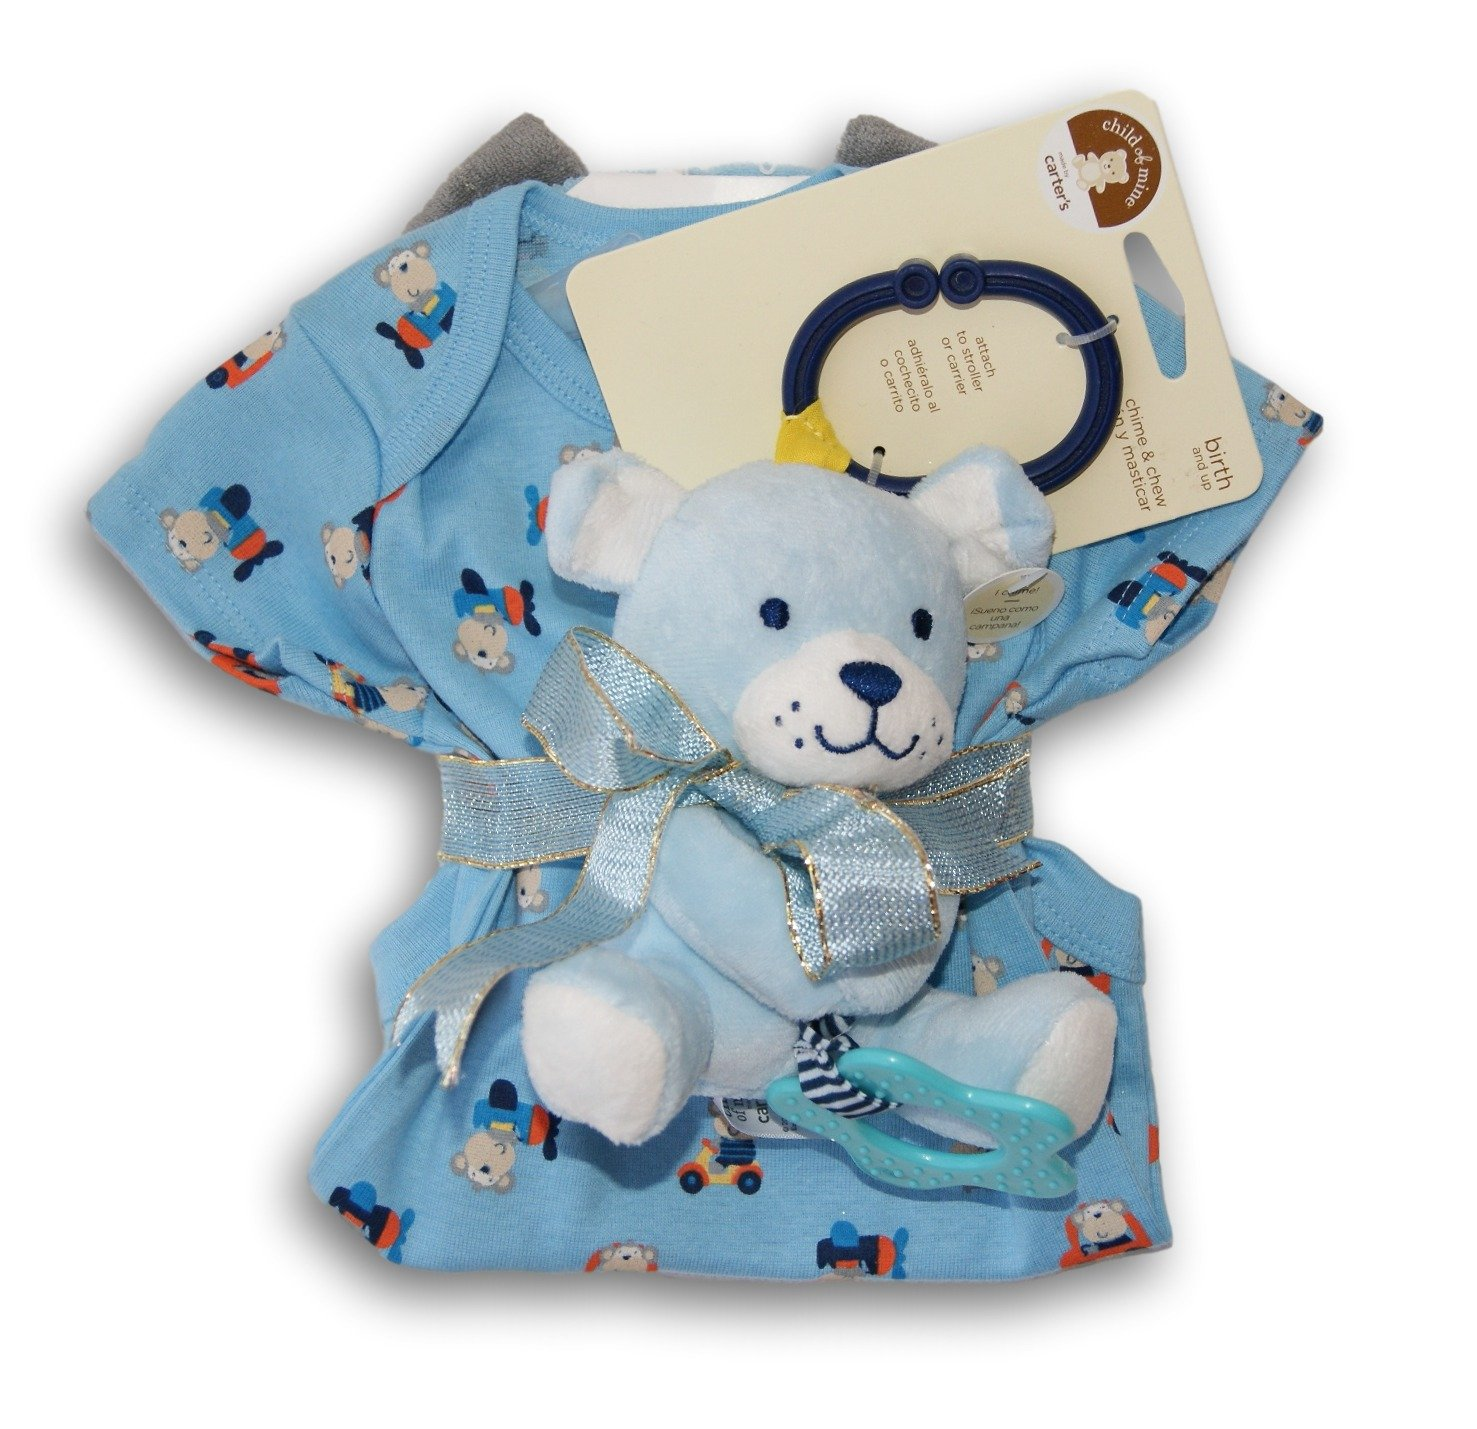 Amazon.com : Baby Boy Blue Gift Set - Onesie, Rattling Teether, Bath Mitt : Baby